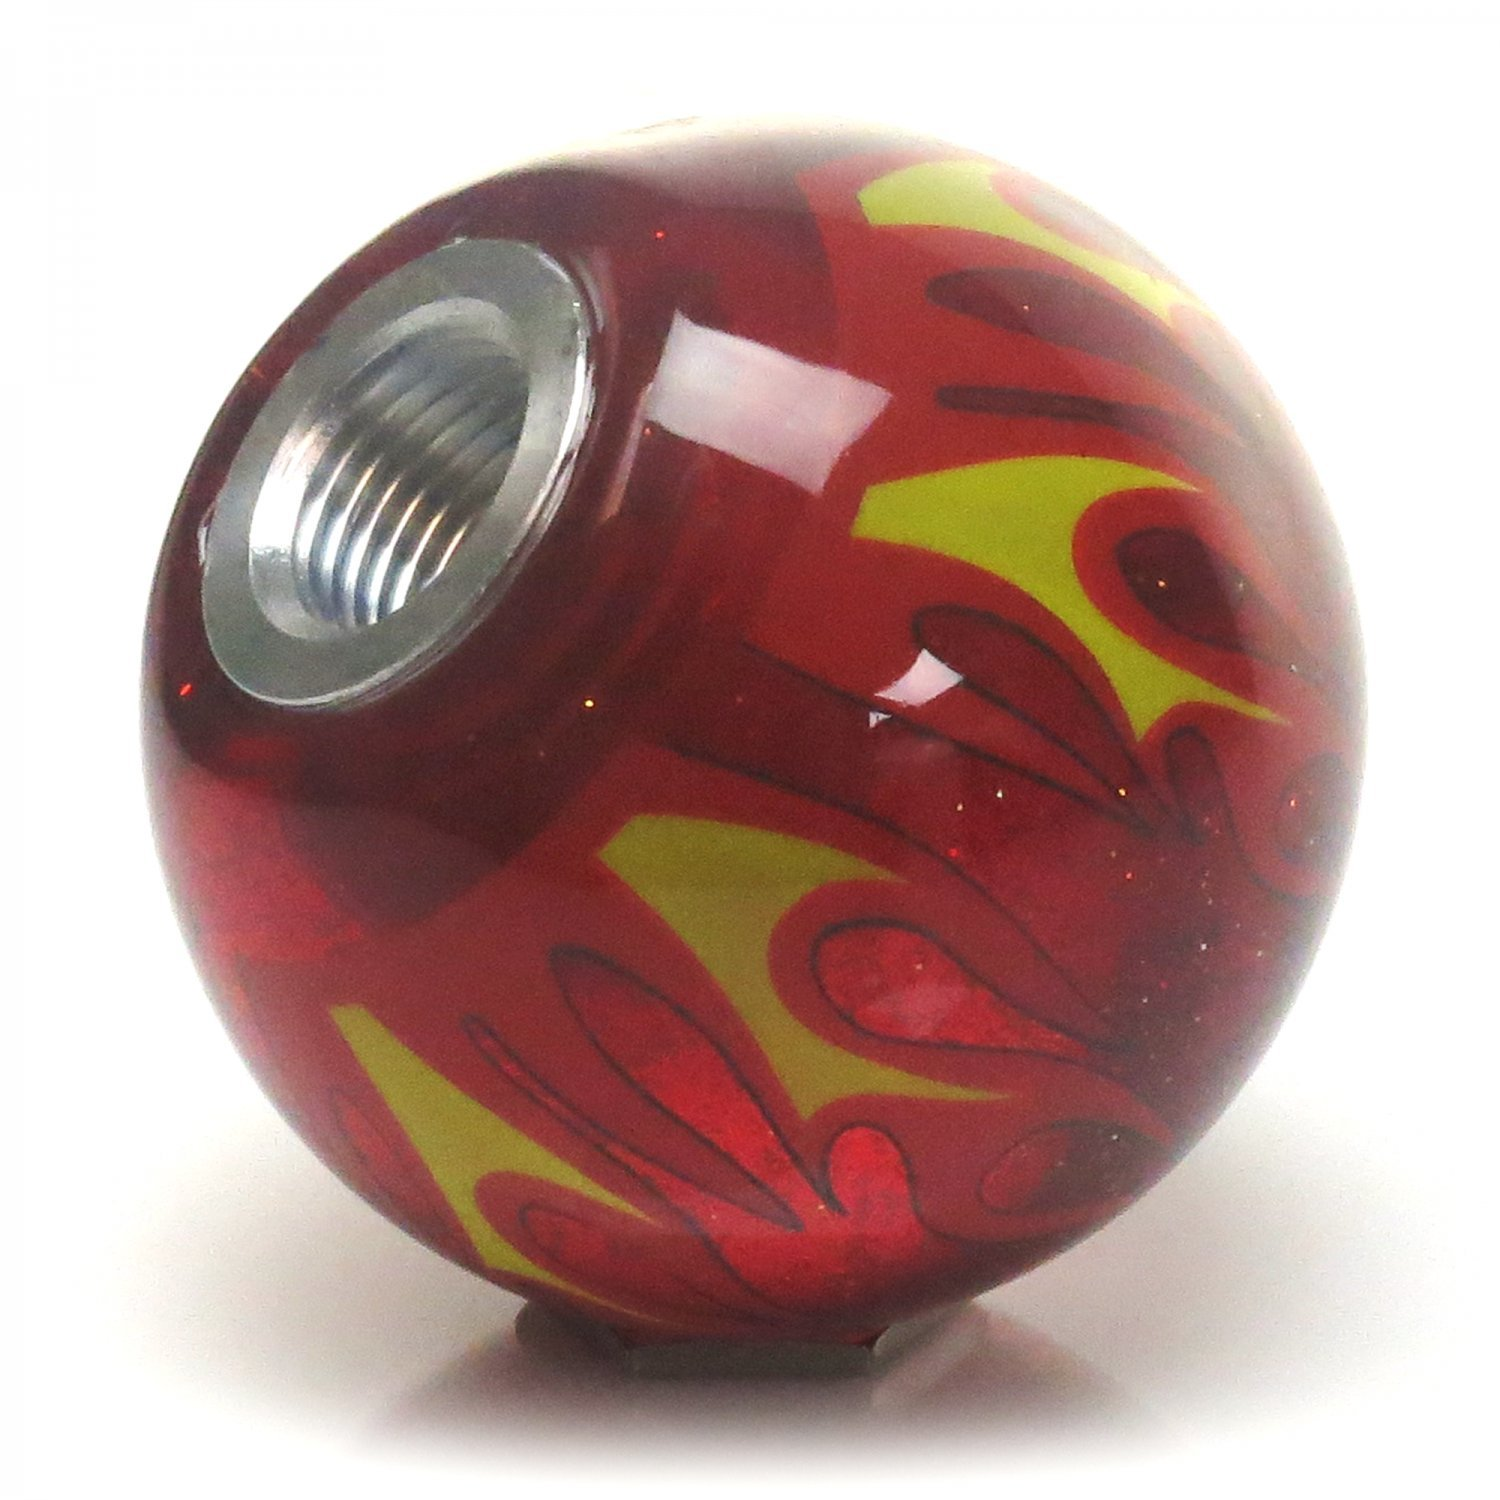 American Shifter 242334 Red Flame Metal Flake Shift Knob with M16 x 1.5 Insert Red Felix The Cat Middle Finger